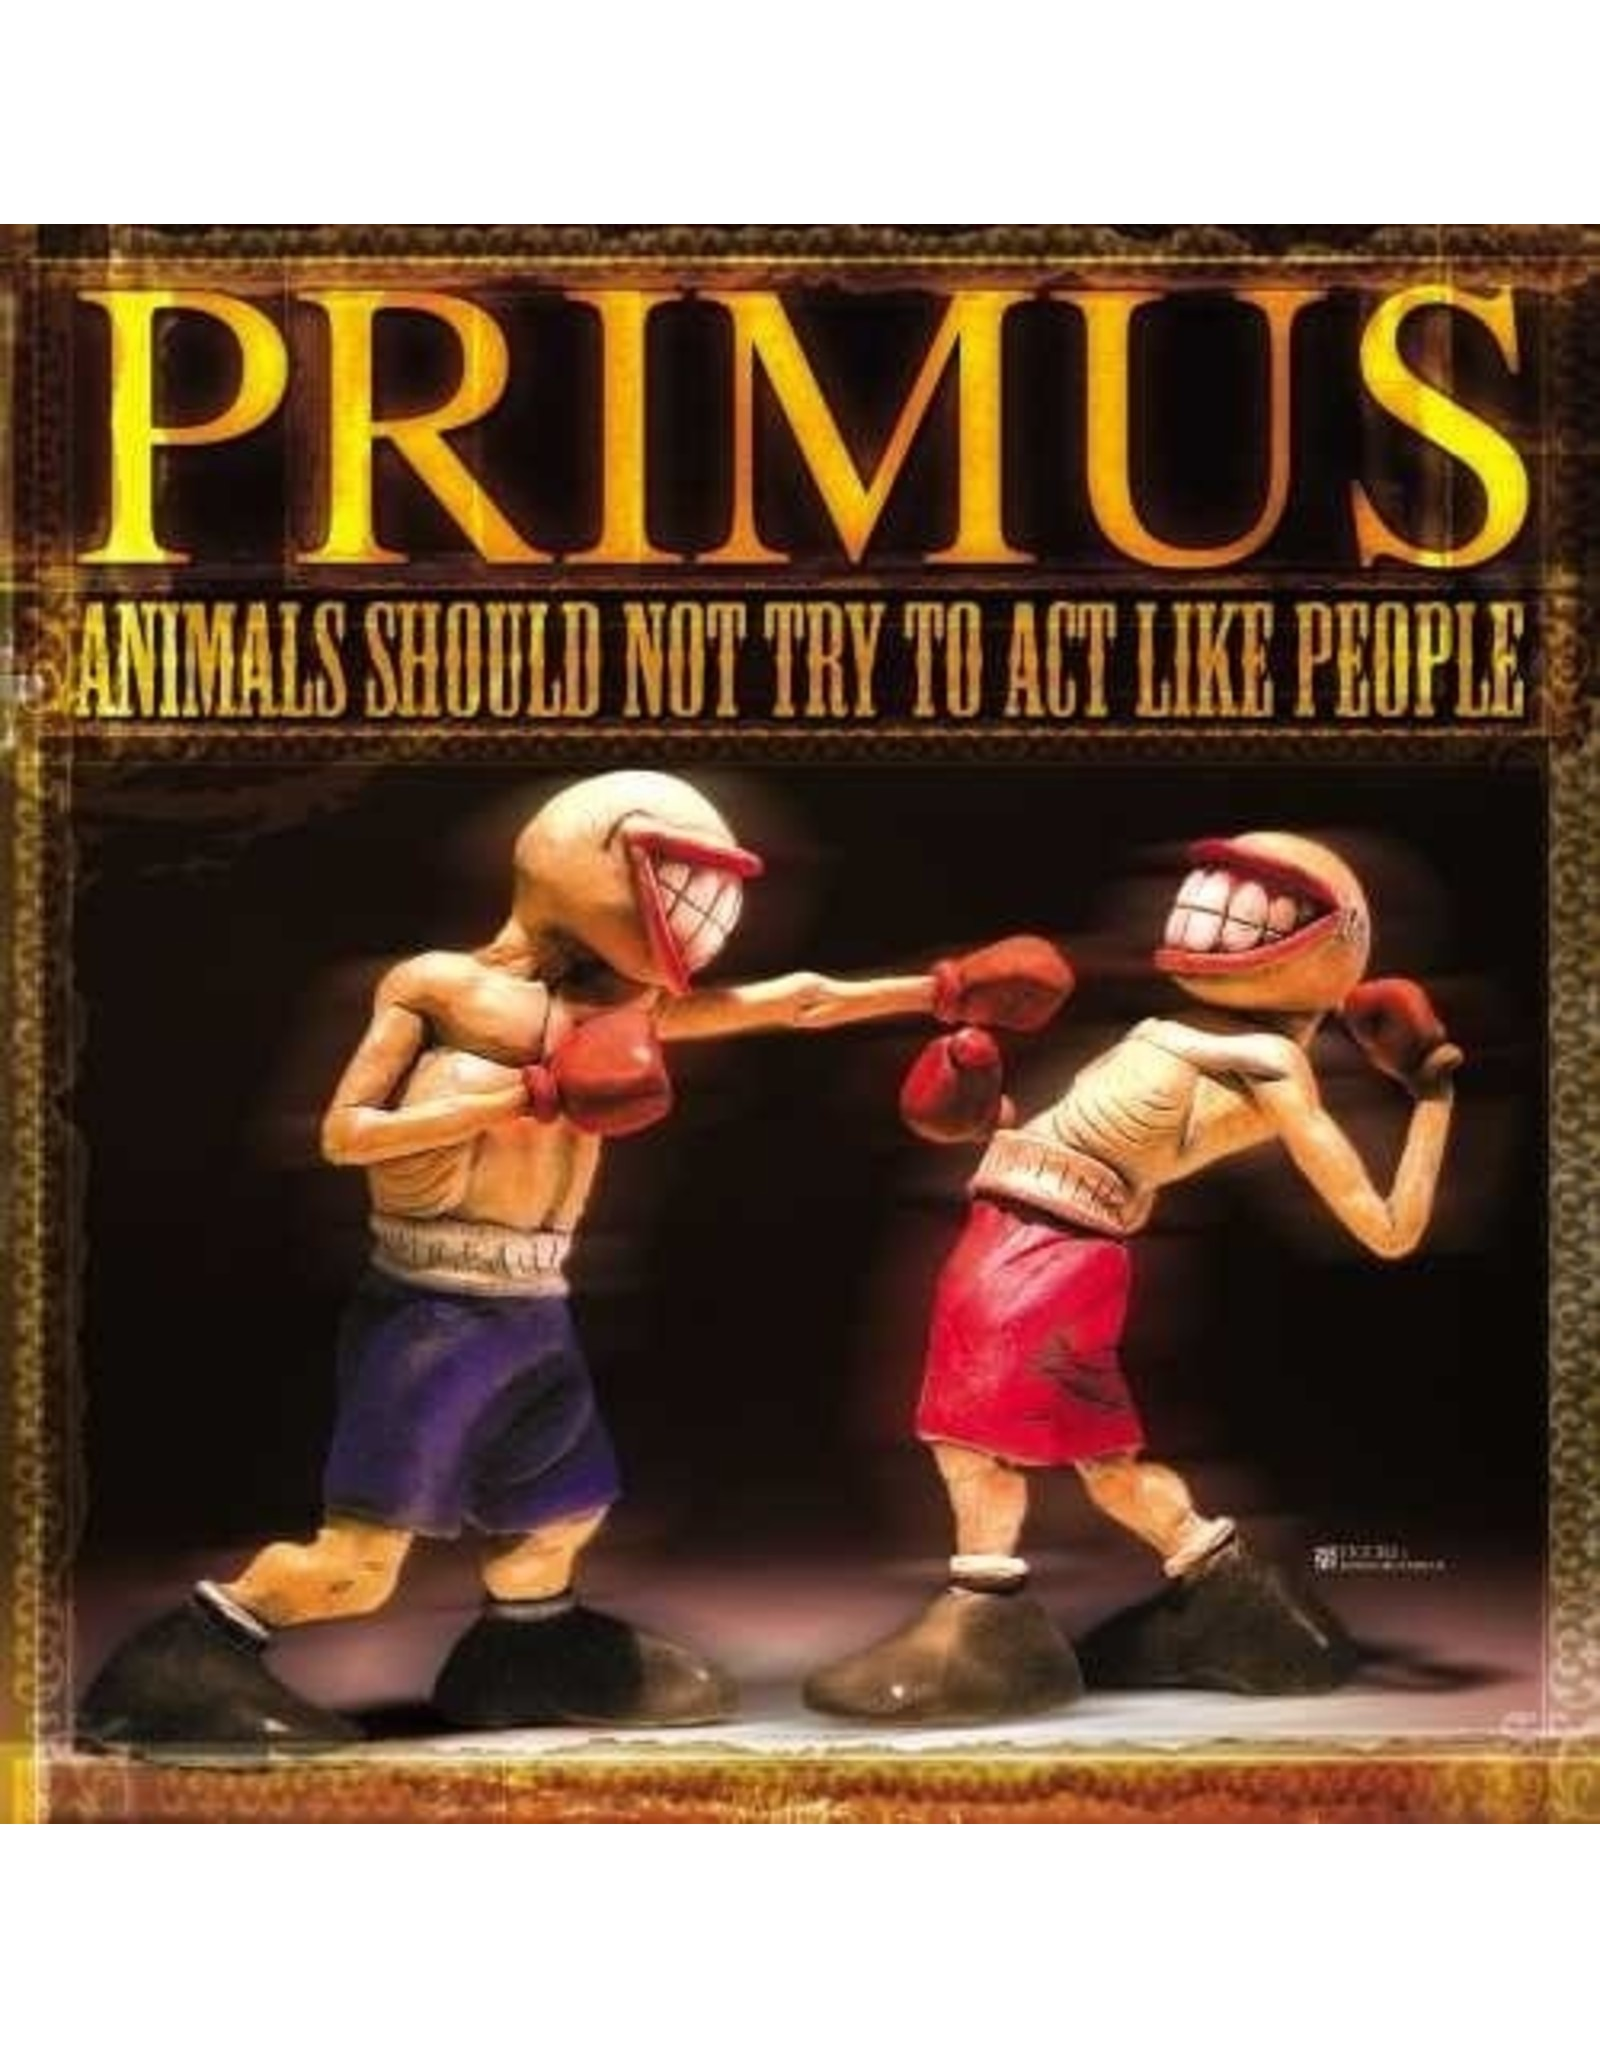 New Vinyl Primus - Animals Should Not Try To Act Like People LP